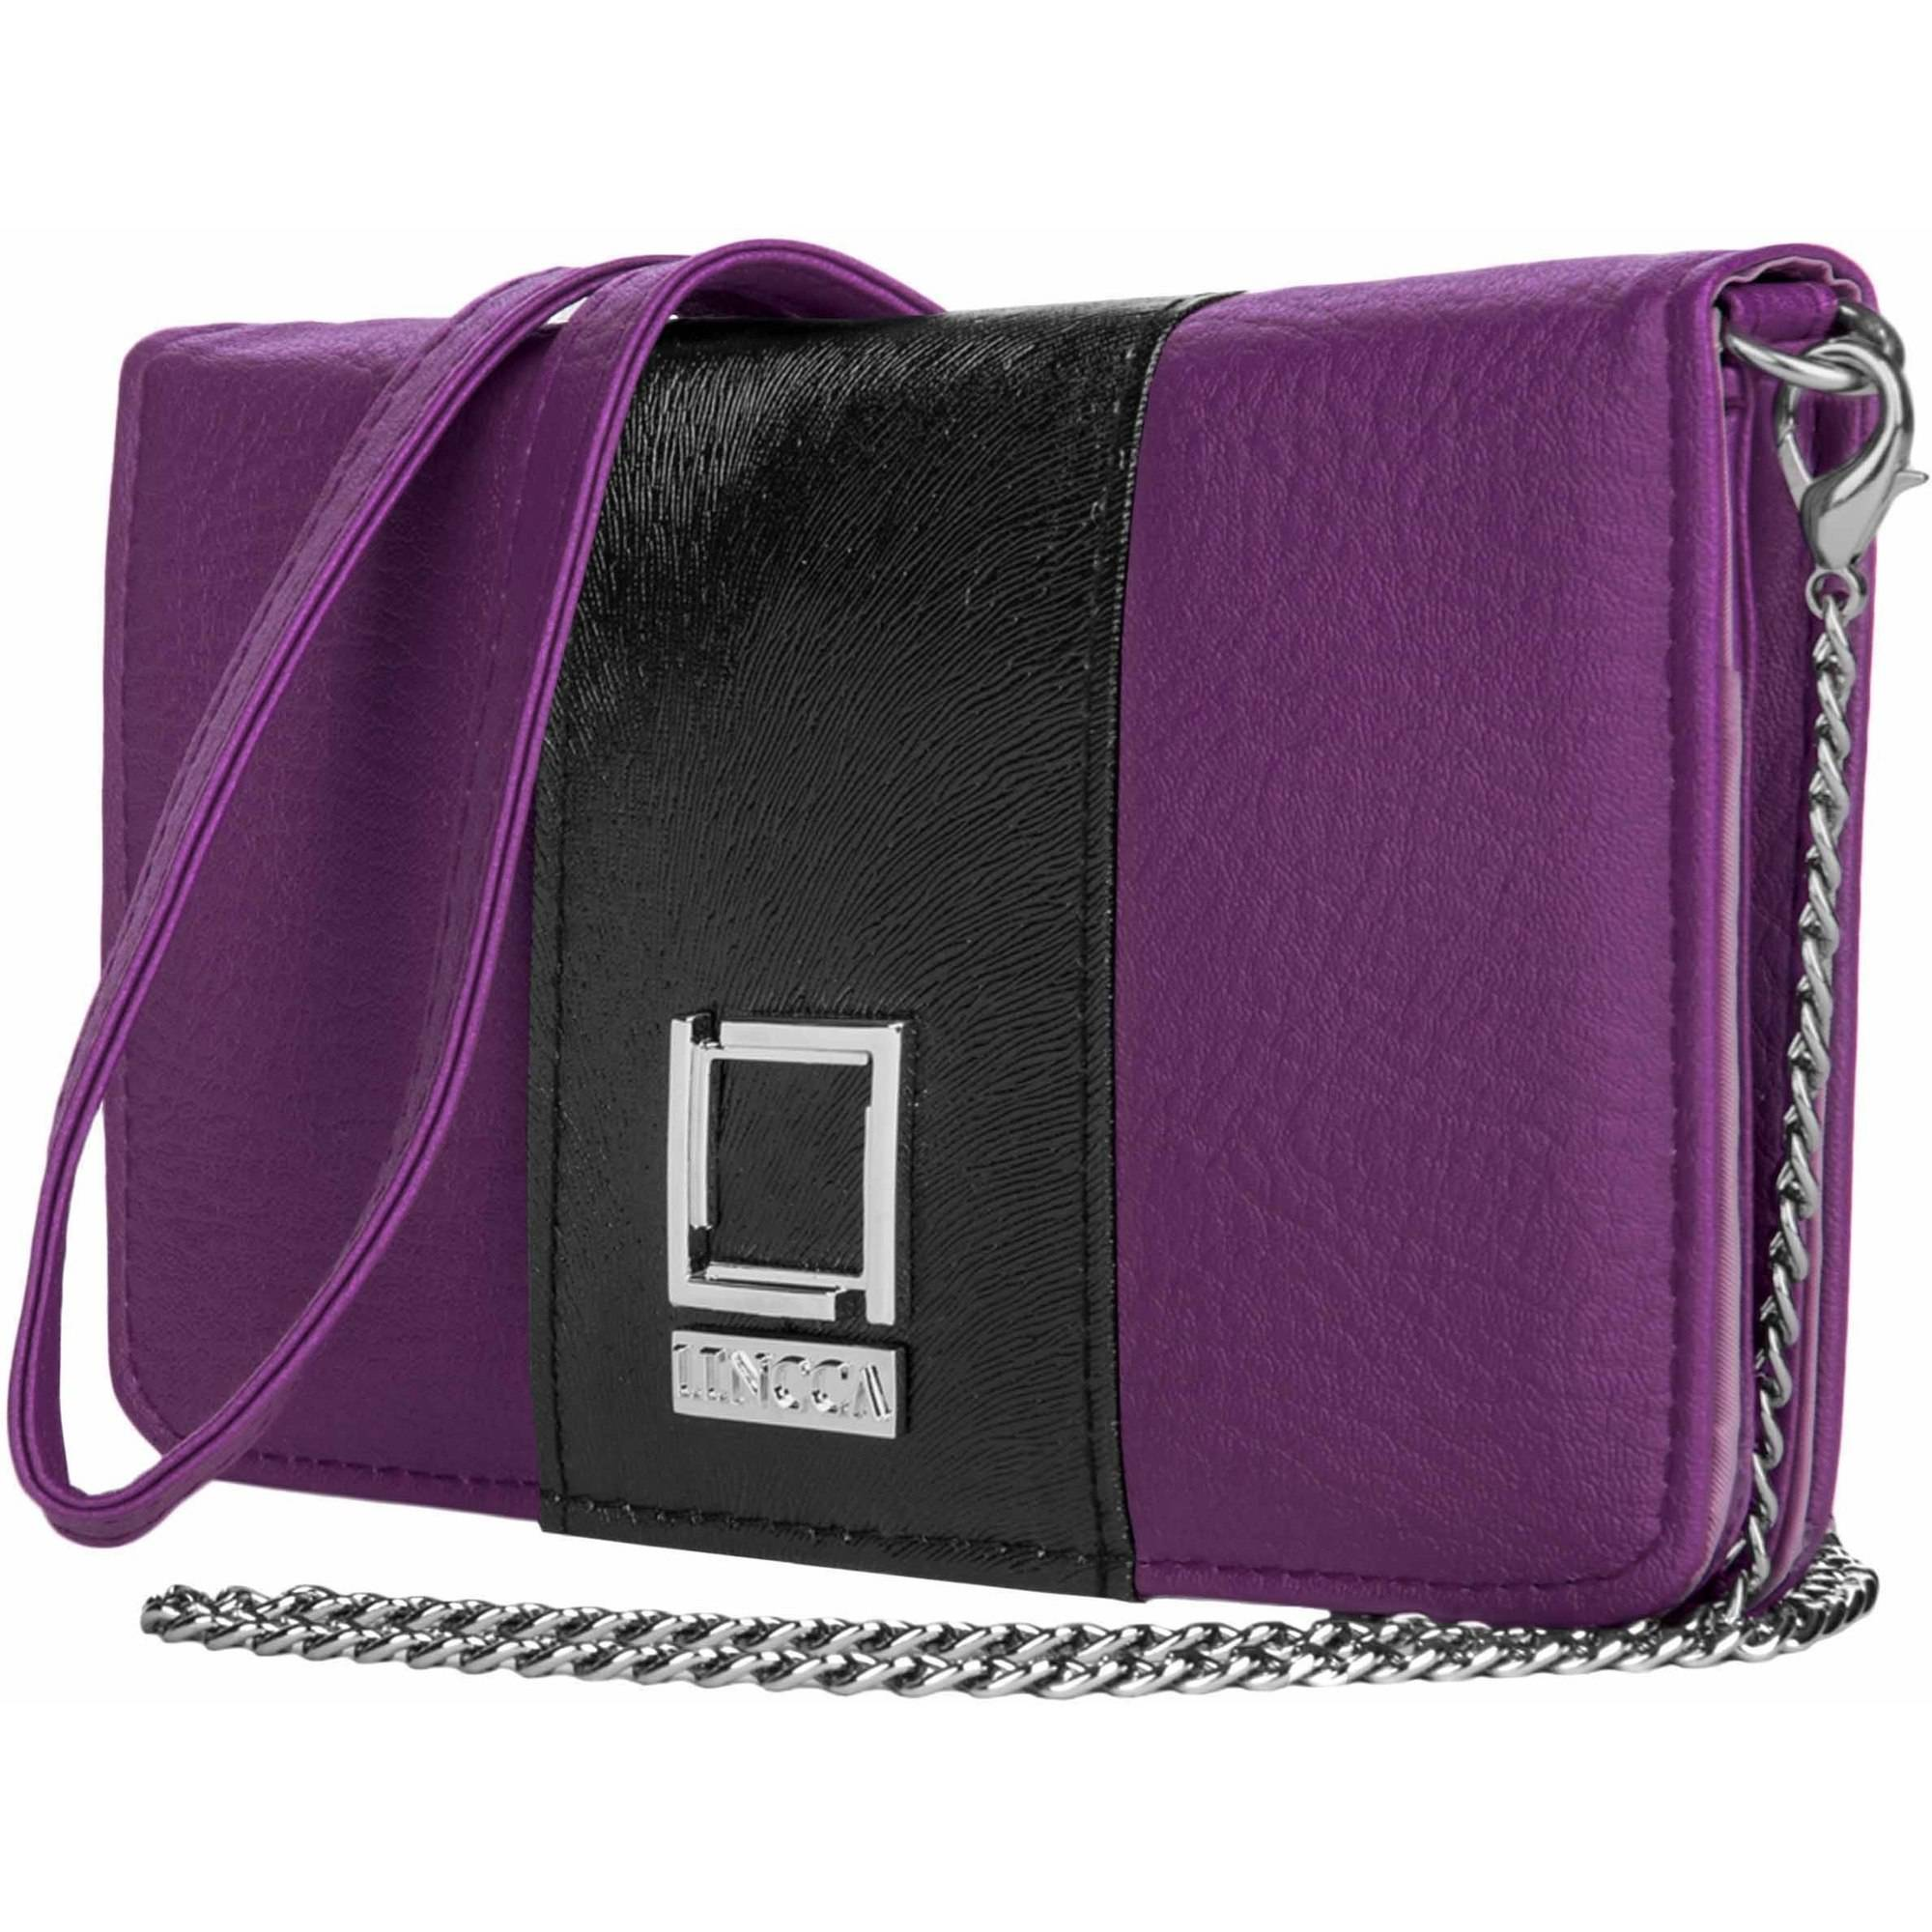 "Lencca Kyma Cell Phone Wallet Case with Attachable Shoulder Strap for Android Phones 5""-6"""